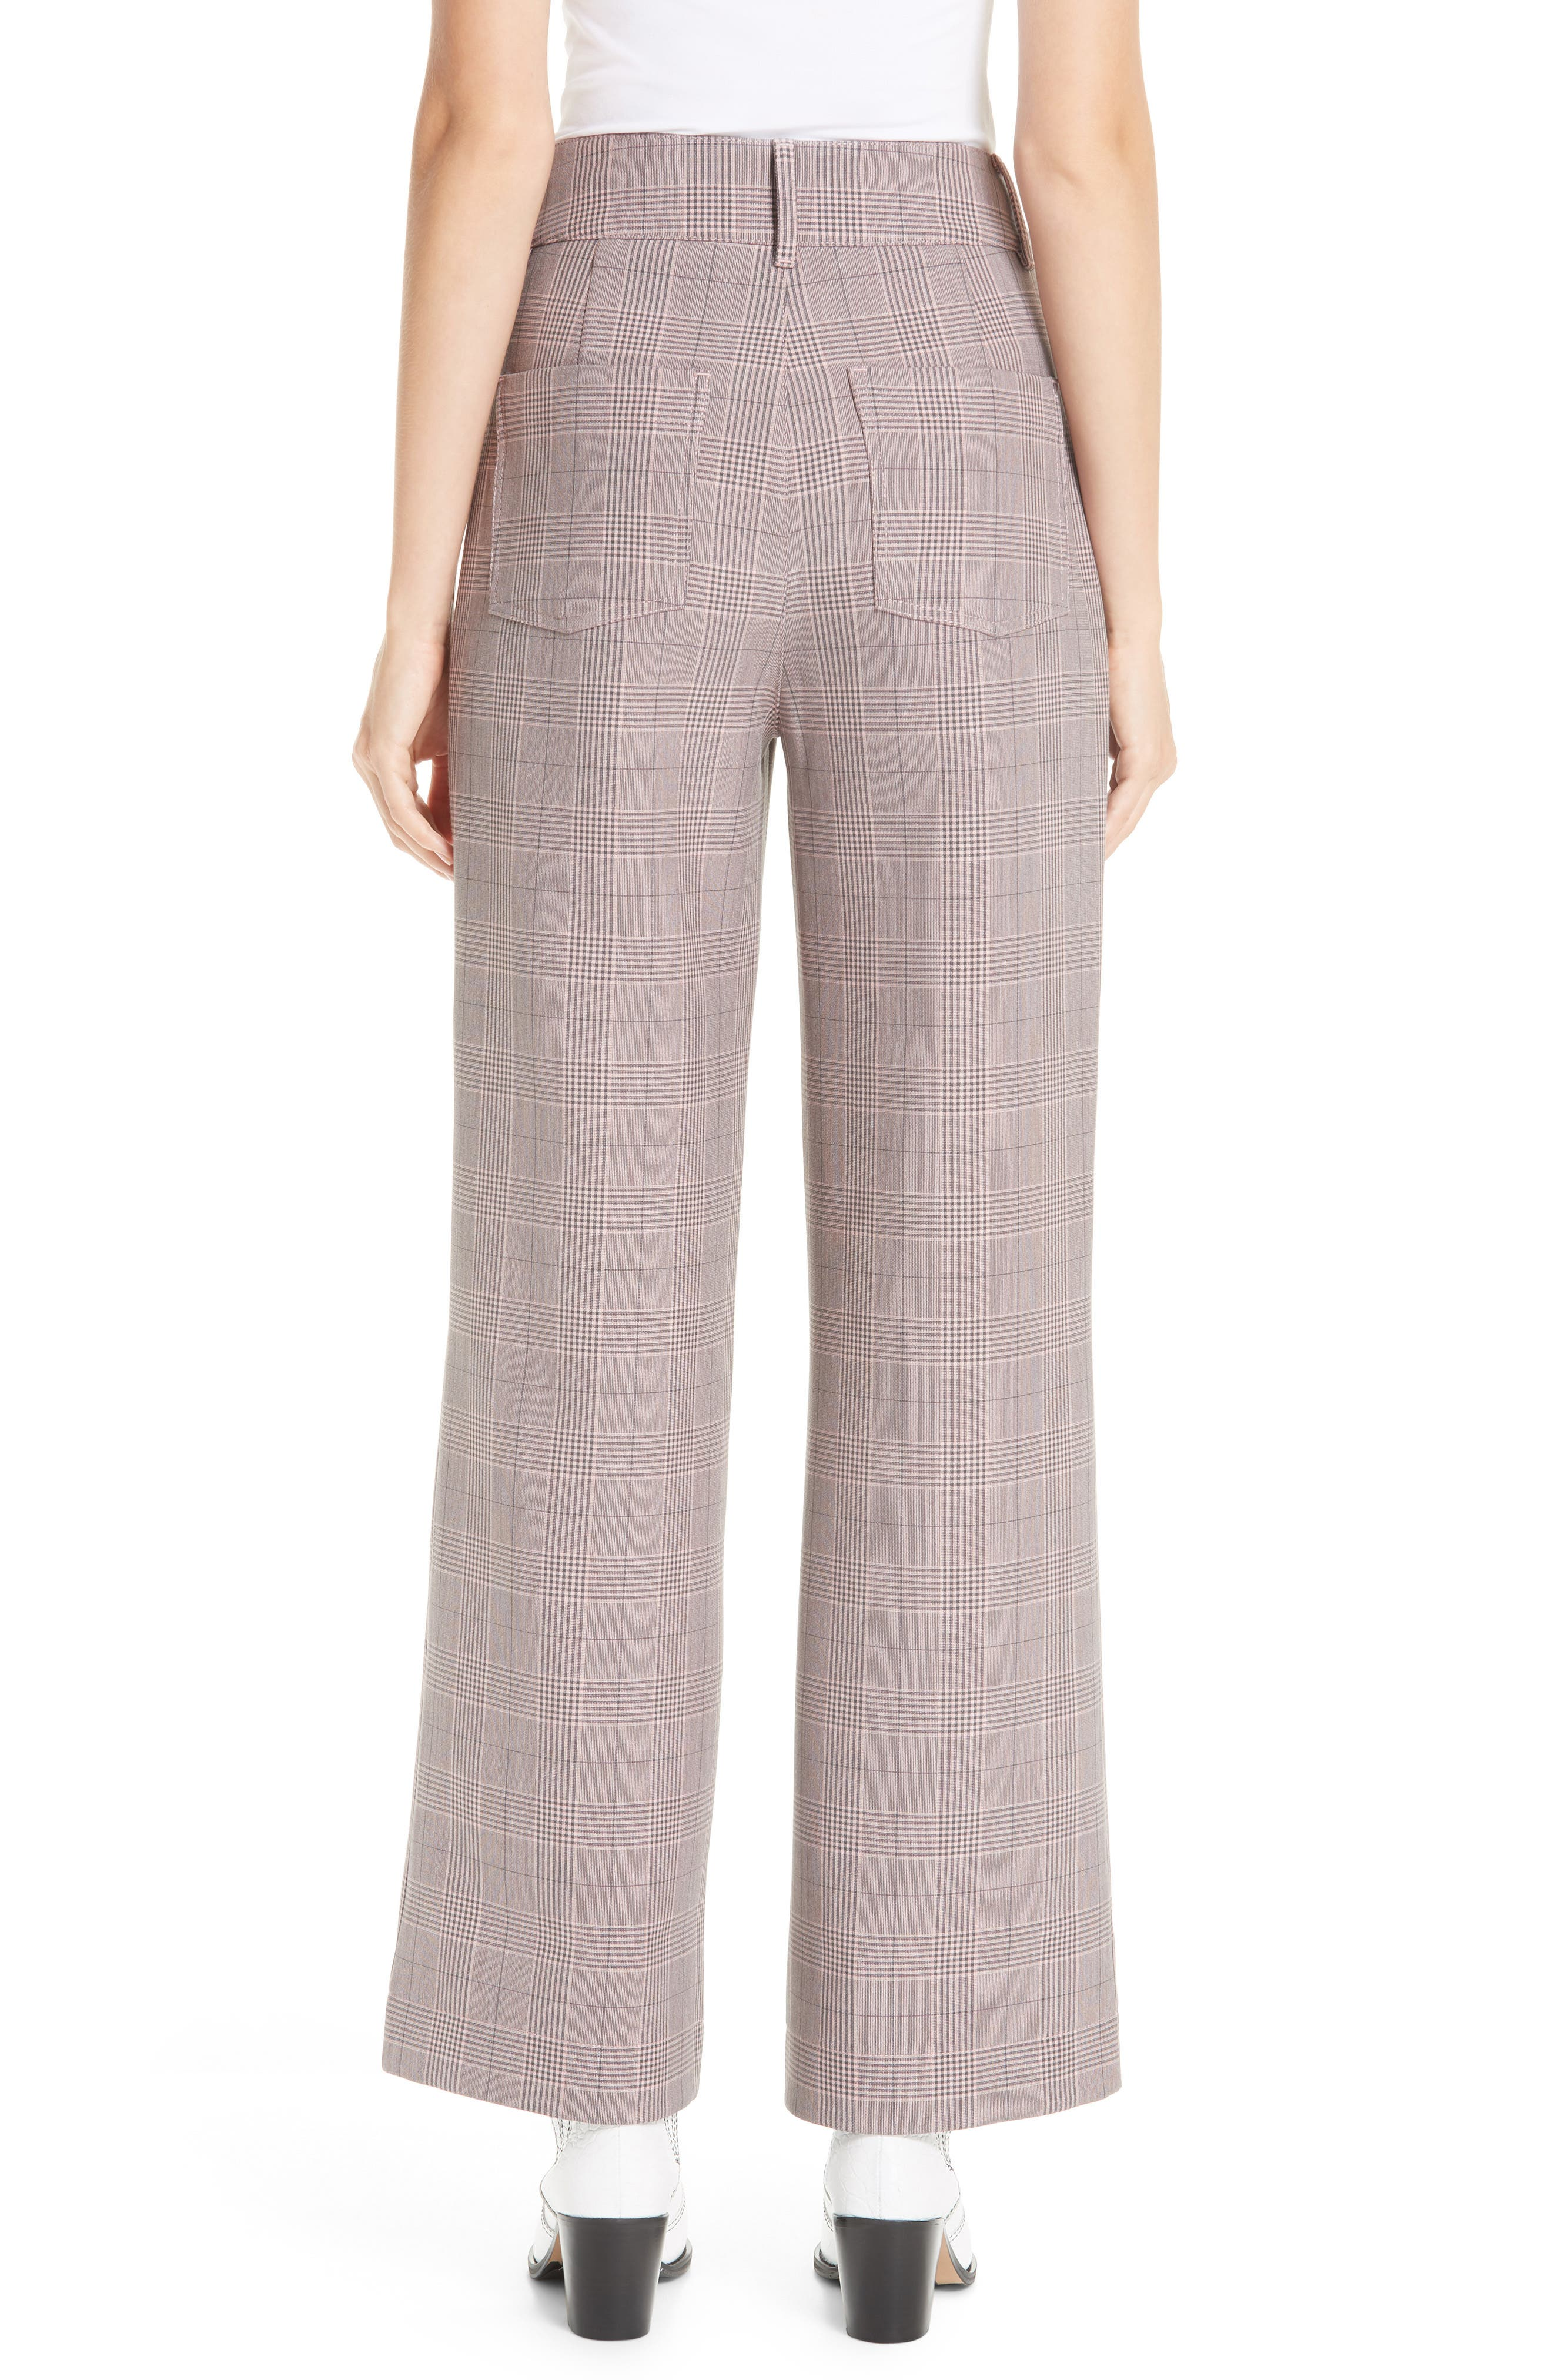 GANNI,                             Suiting Pants,                             Alternate thumbnail 2, color,                             SILVER PINK 499